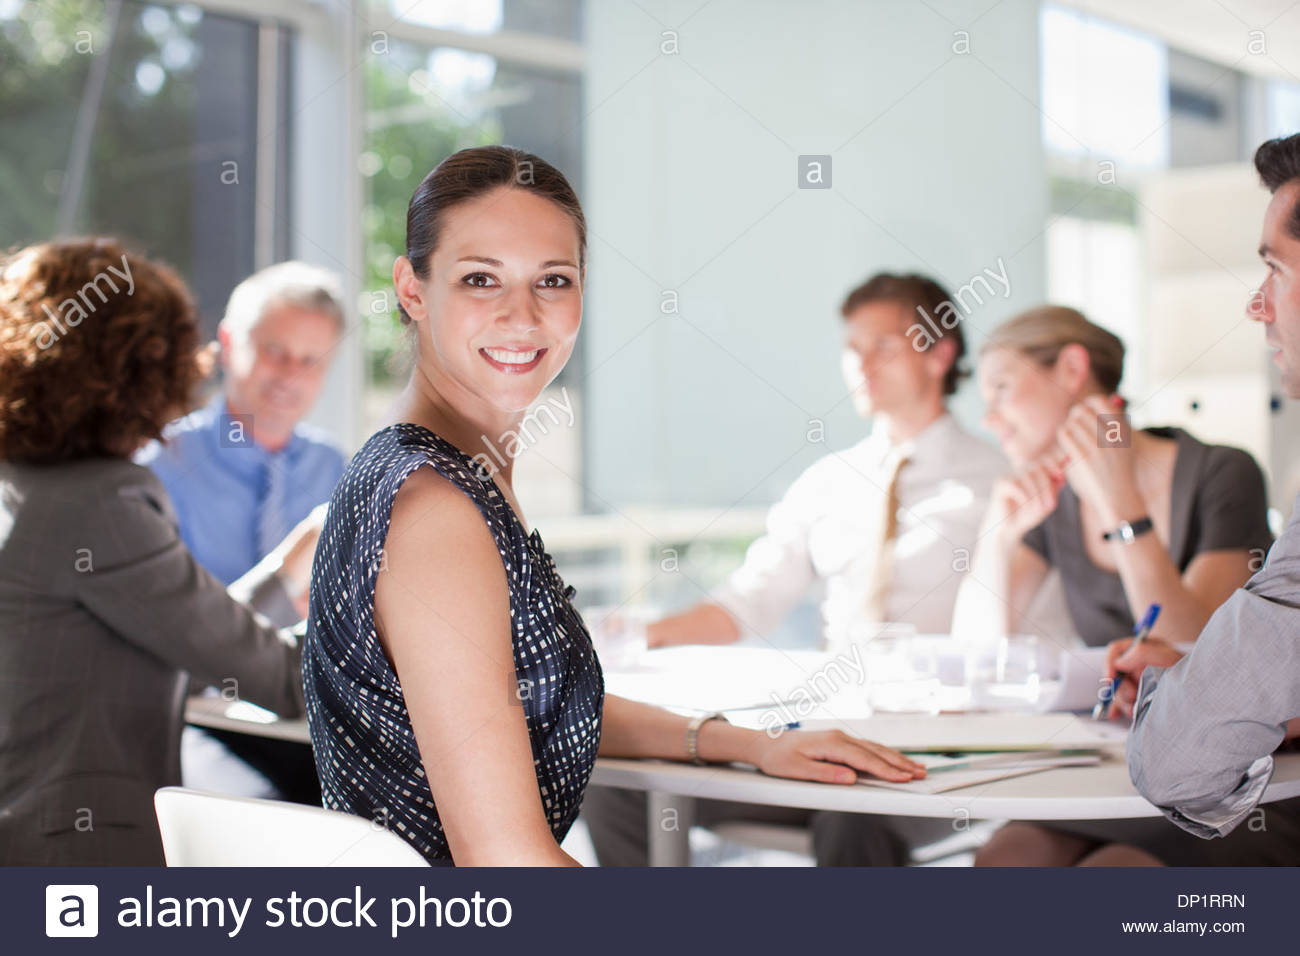 Businesswoman with co-workers meeting at conference table - Stock Image